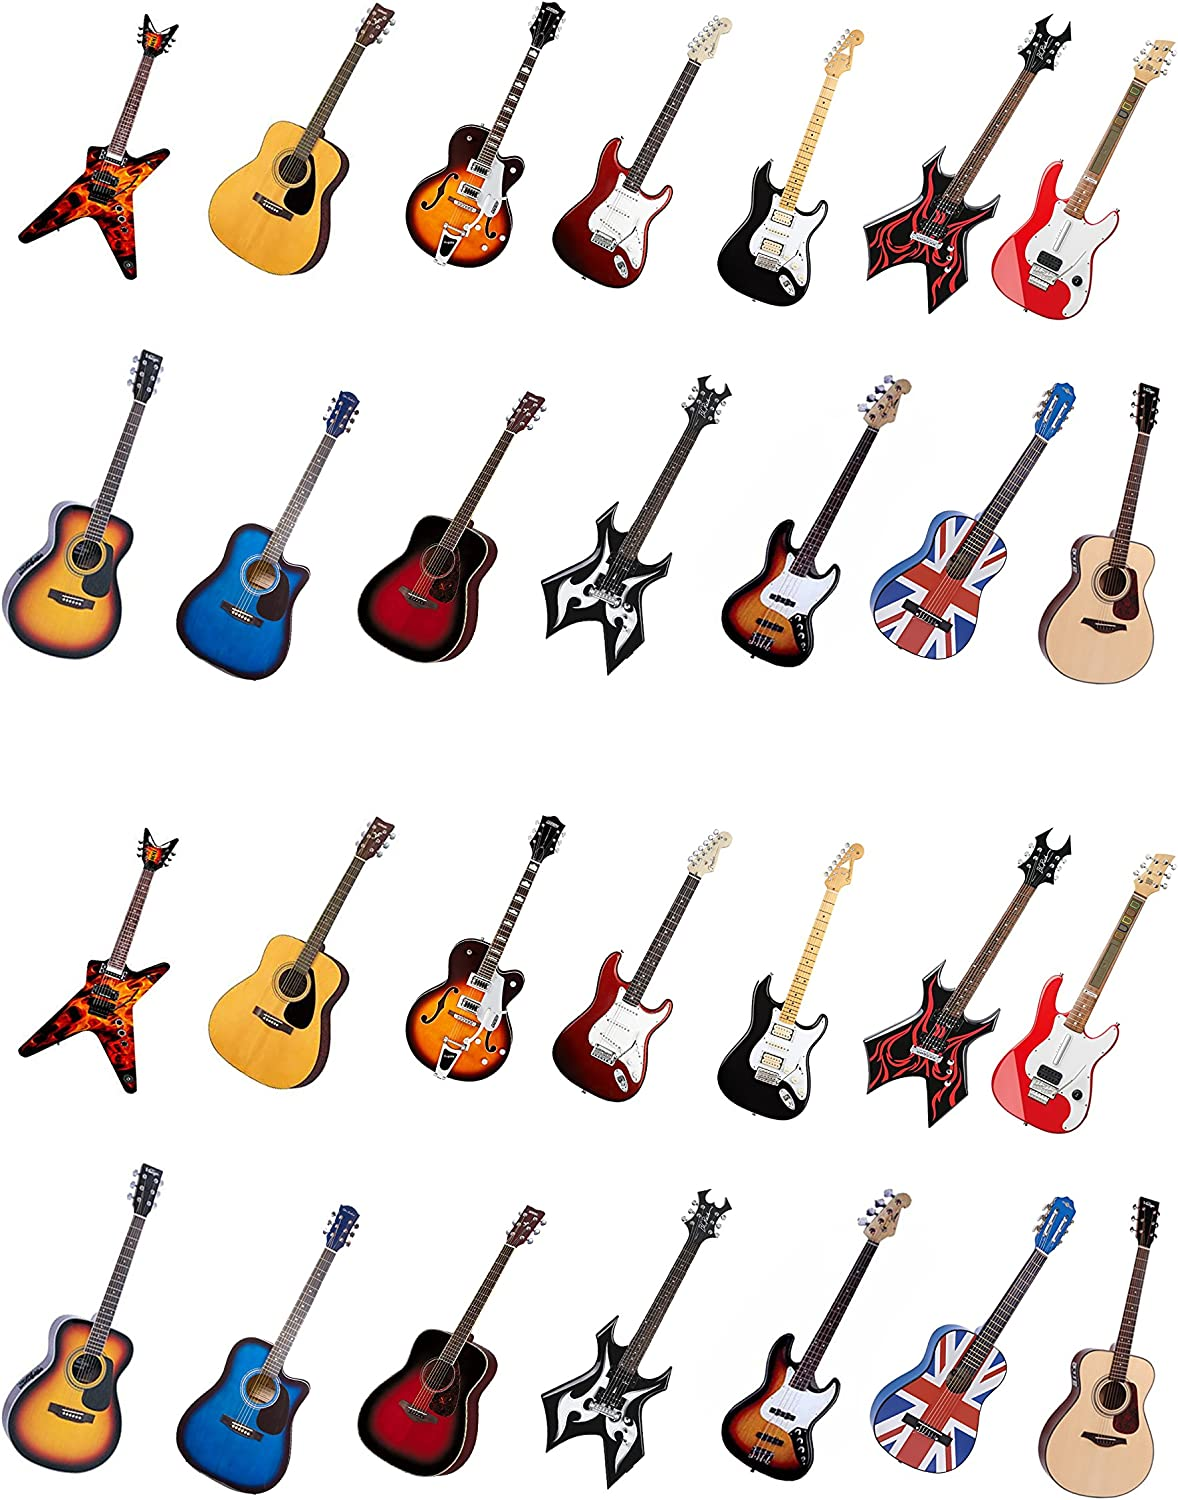 28 Stand Up Acoustic Rock Guitar Themed Edible Wafer Paper Cake Toppers Decorations Küche Haushalt